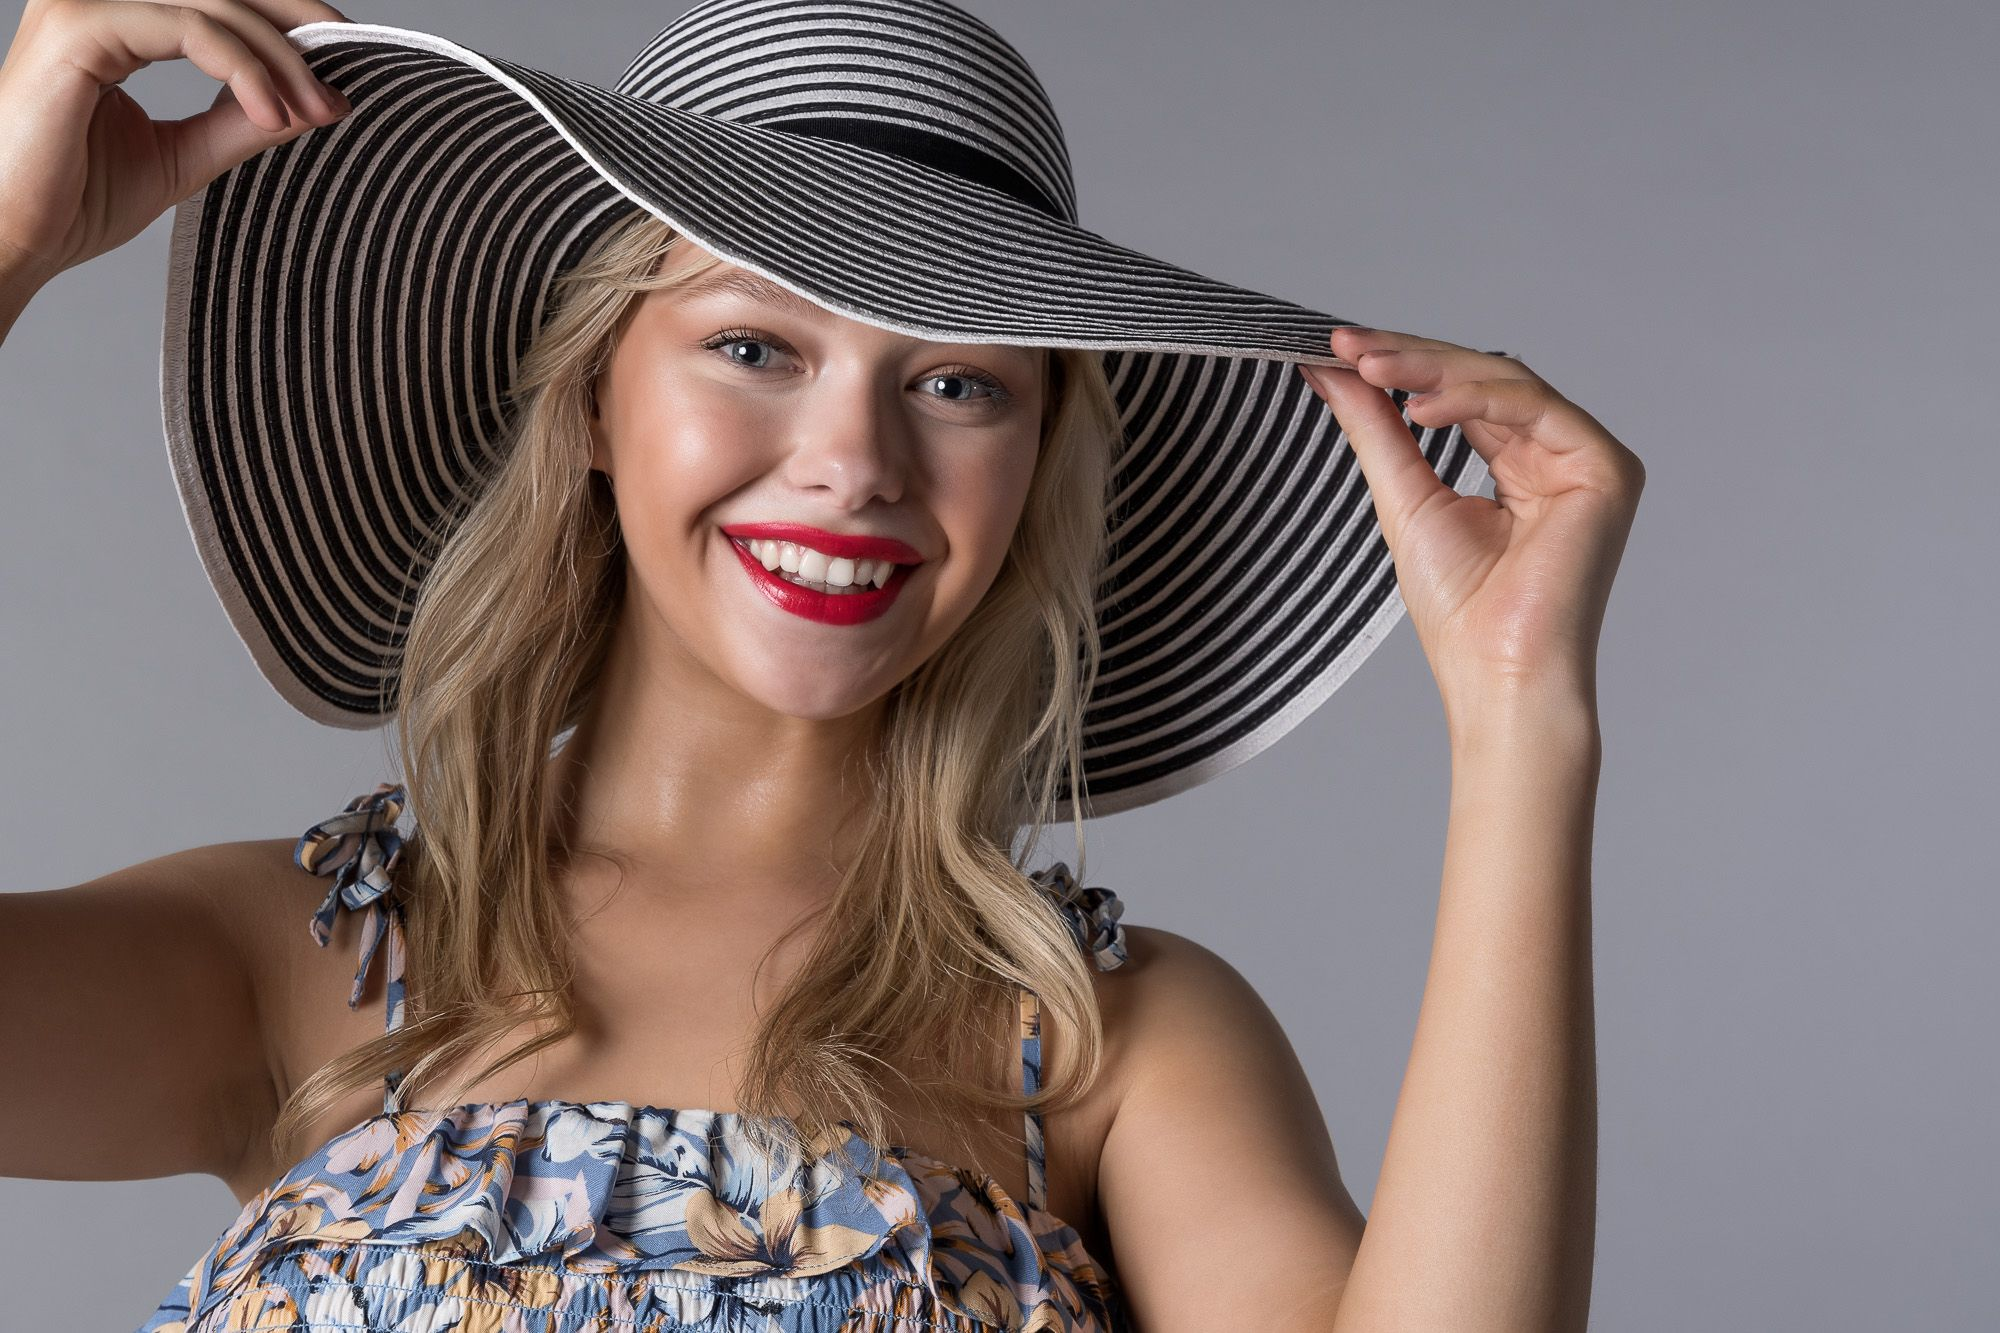 Smiling woman wear floral top and large striped hat on plain grey background